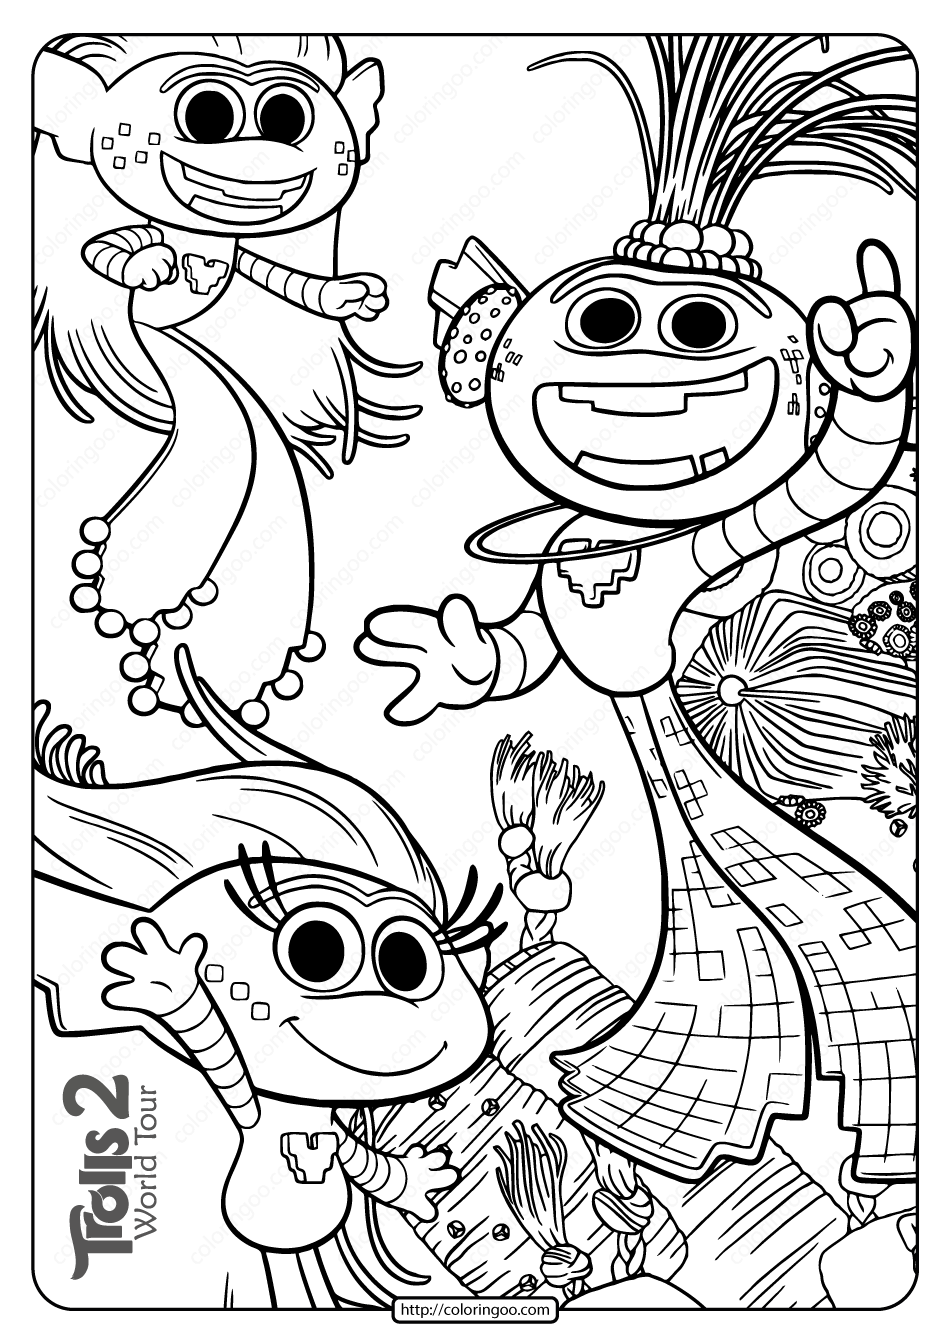 Free Printable Trolls 2 King Trollex Coloring Page Coloring Pages Free Coloring Pages Coloring Books